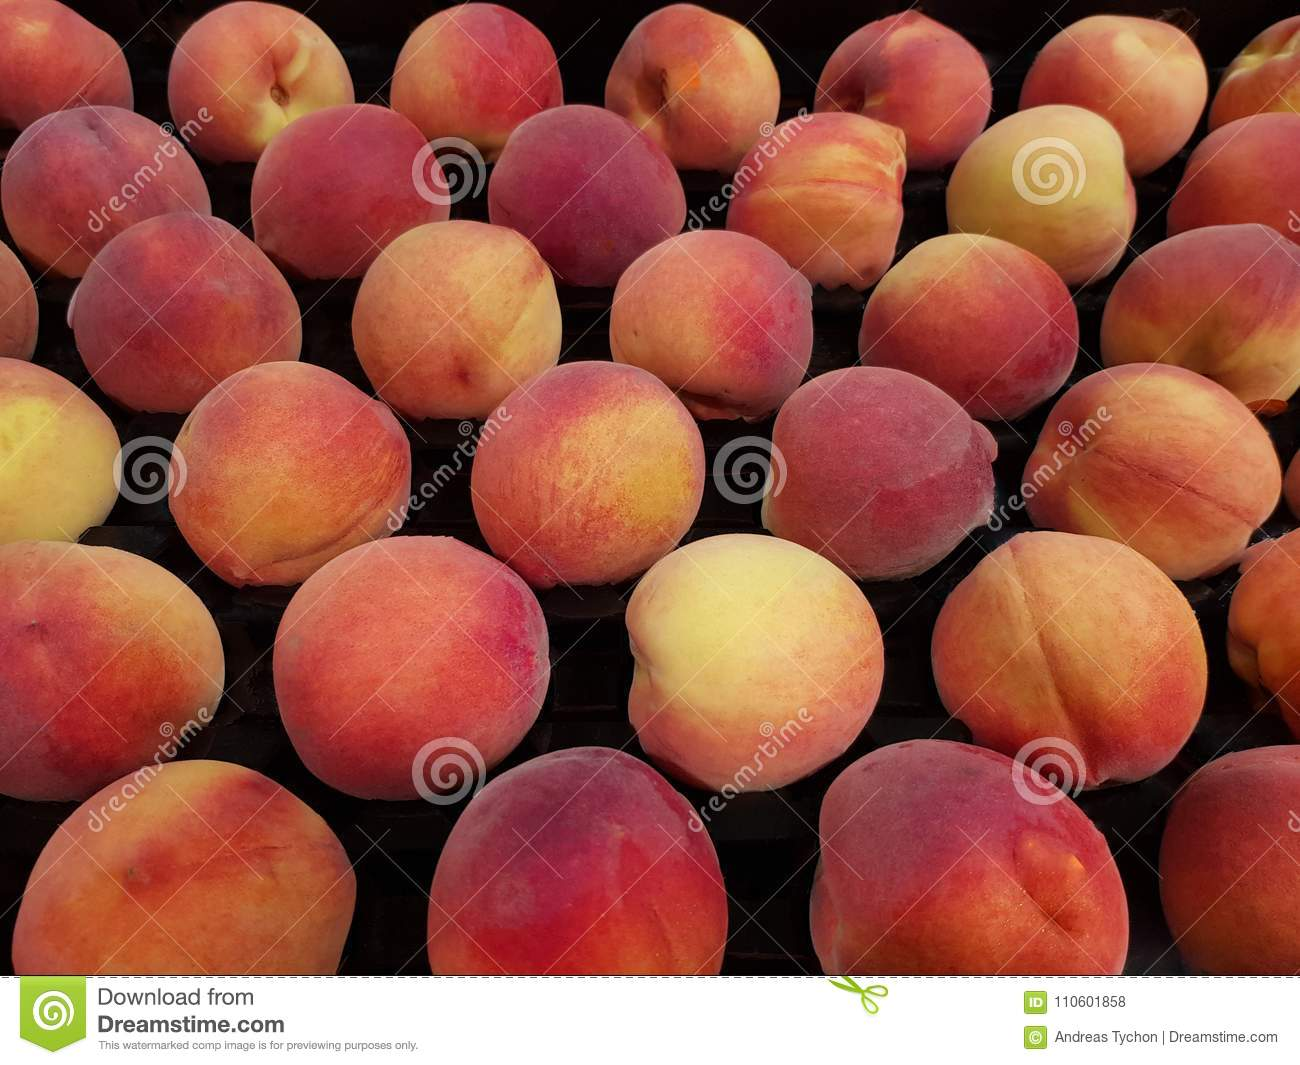 peaches on a black background stock photo image of ingredient fuzzy 110601858 dreamstime com